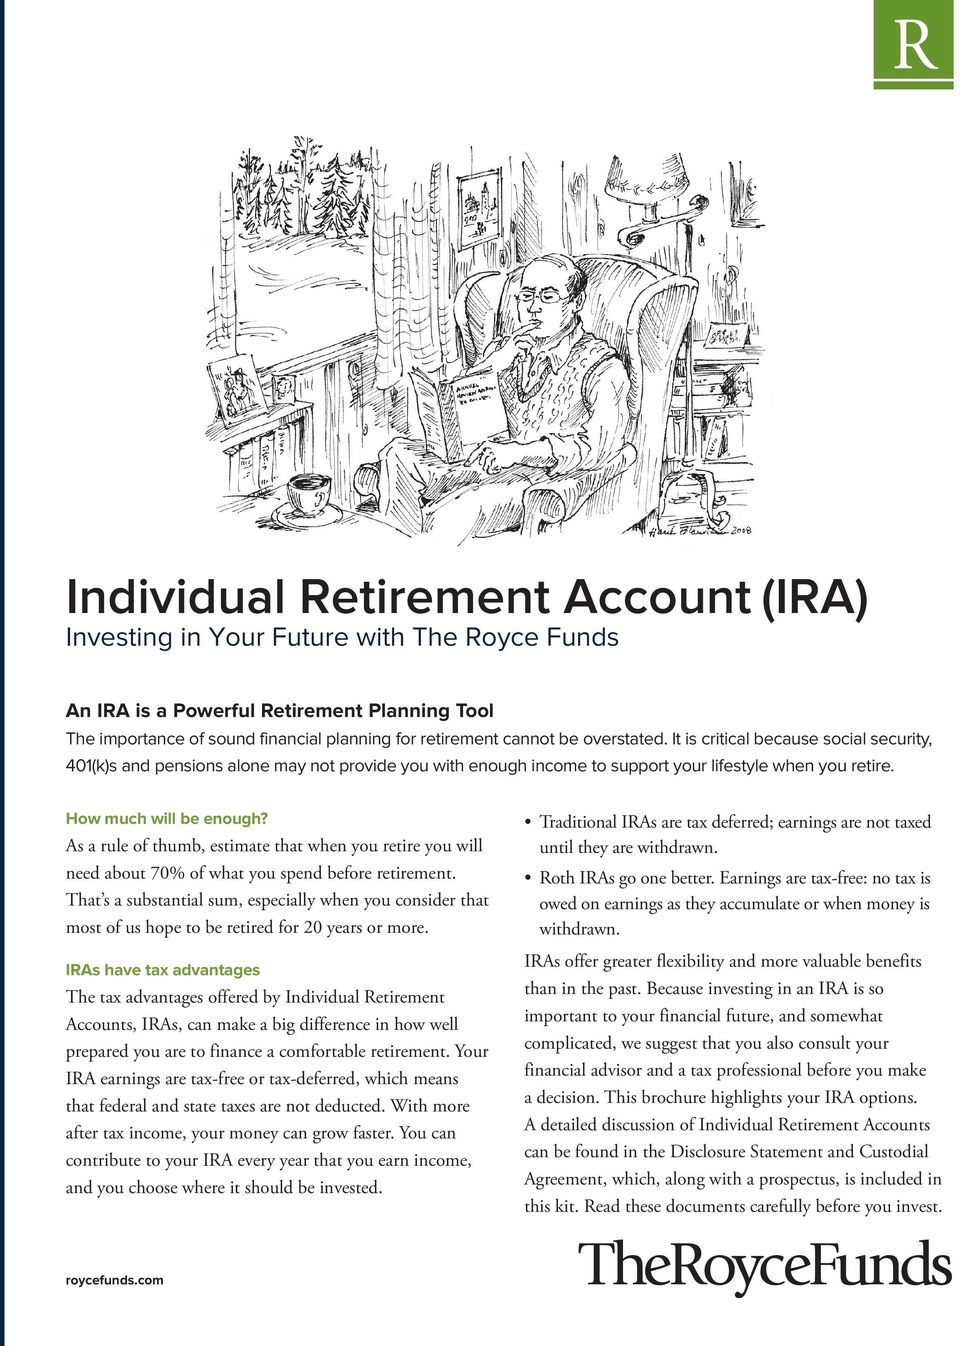 As a rule of thumb, estimate that when you retire you will need about 70% of what you spend before retirement.